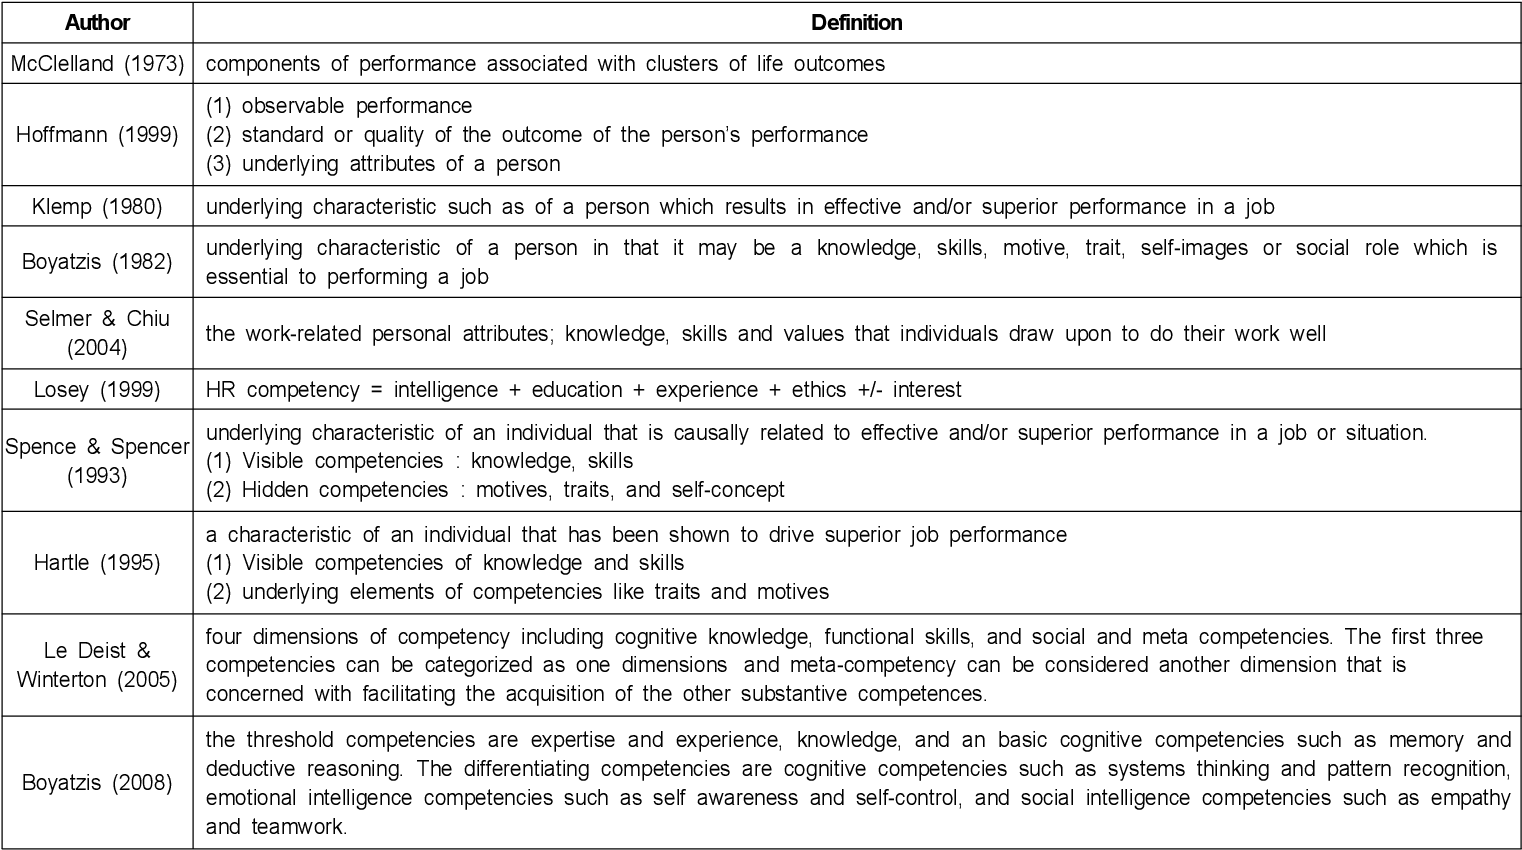 Table 2 from Line Managers' HR Competency : Scale